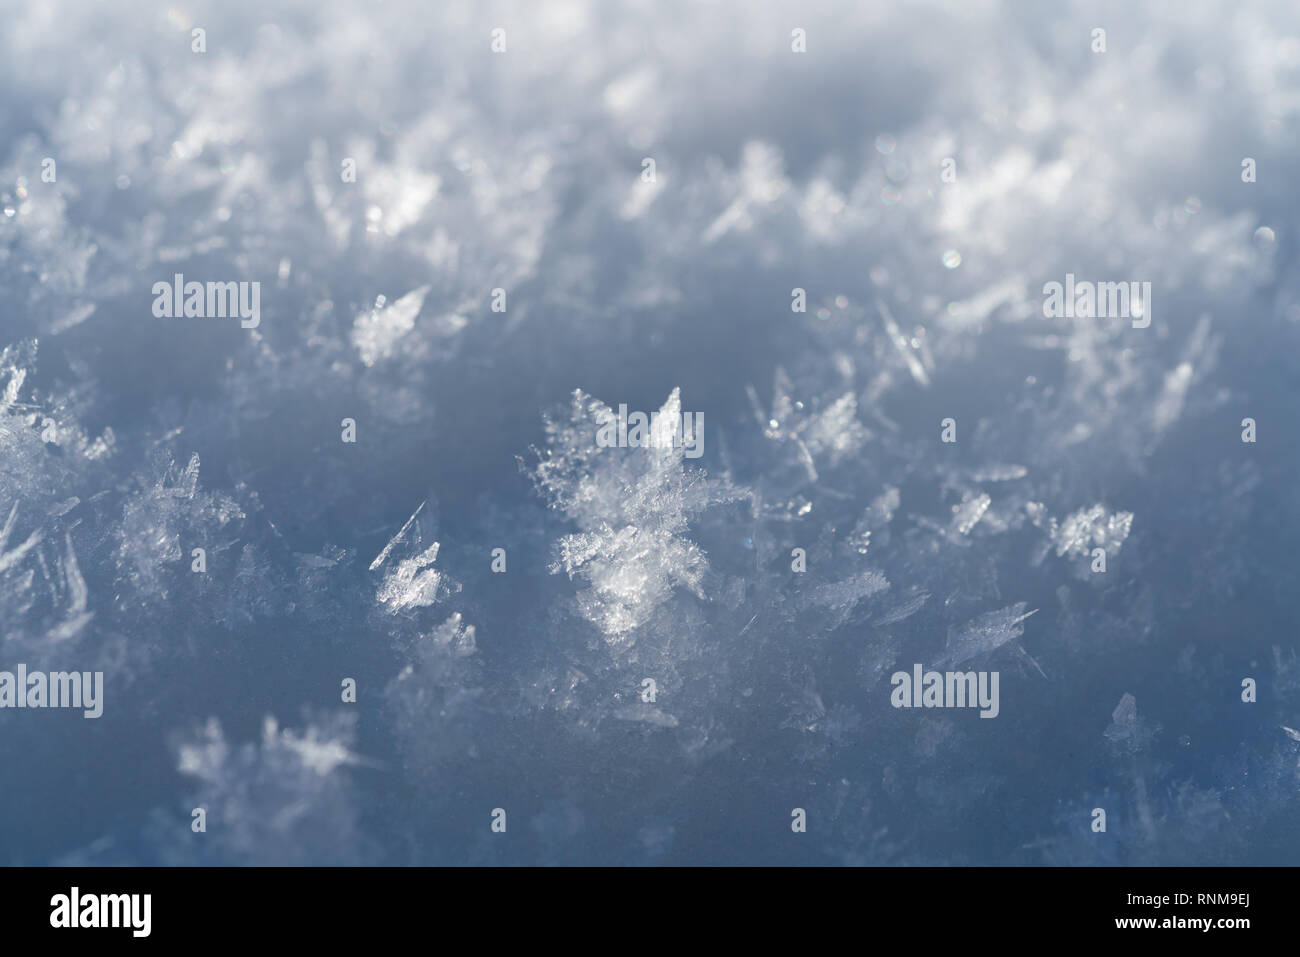 Snowflakes Close Up Abstract on a sunny day Stock Photo